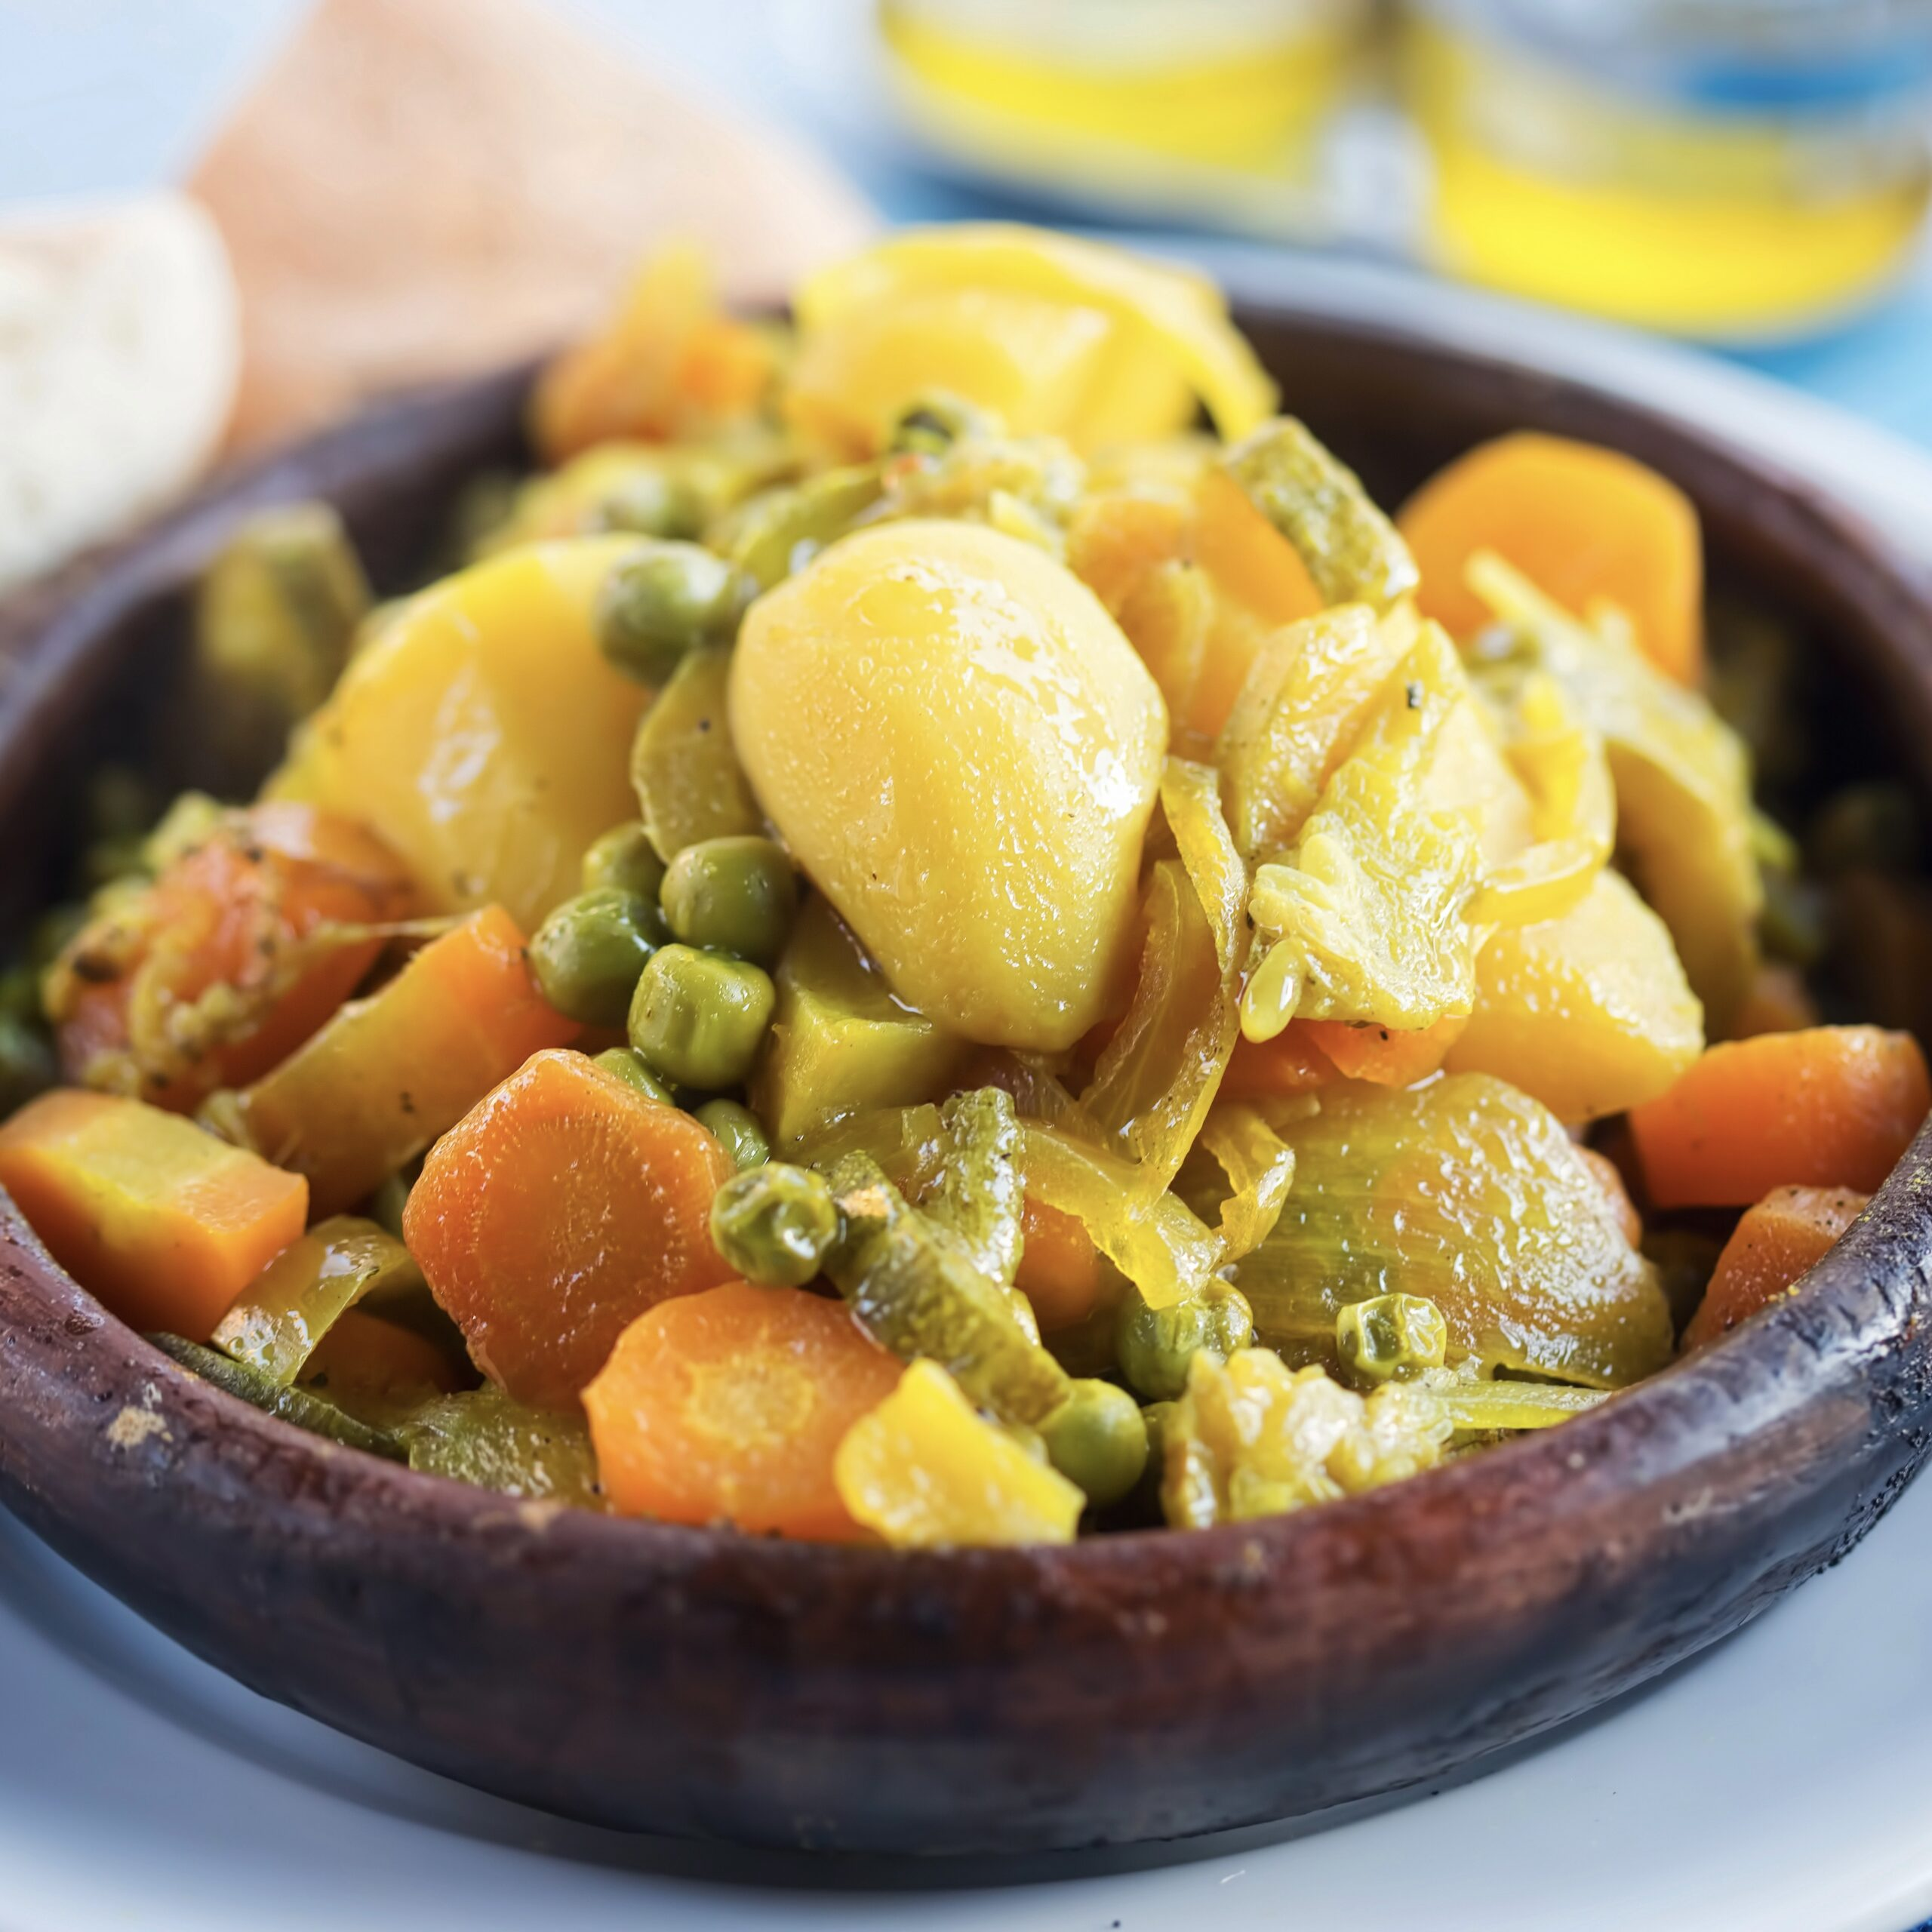 Vegetable tajine, 7 legumes tajine, Morocco